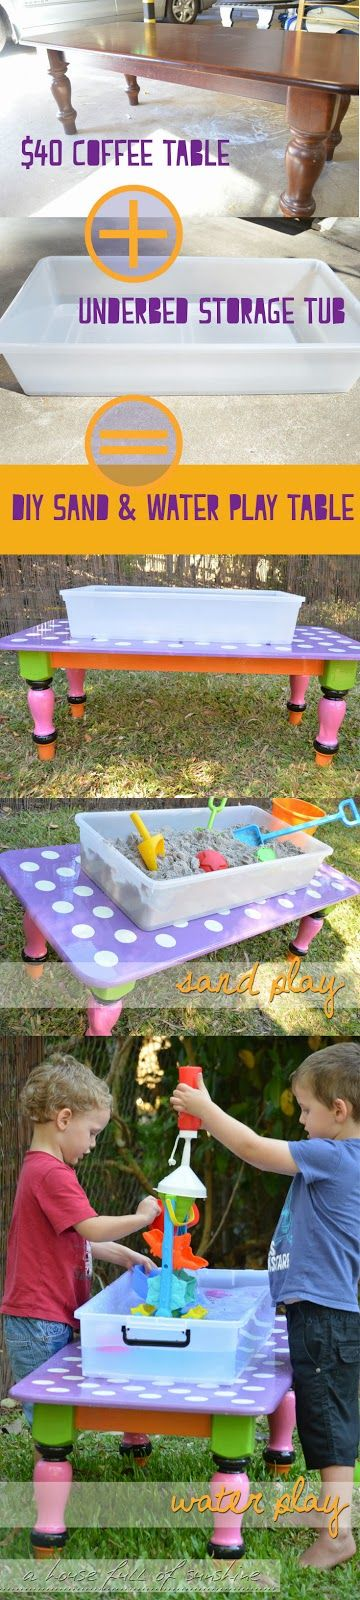 A house full of sunshine: Summer holiday special - Water play table